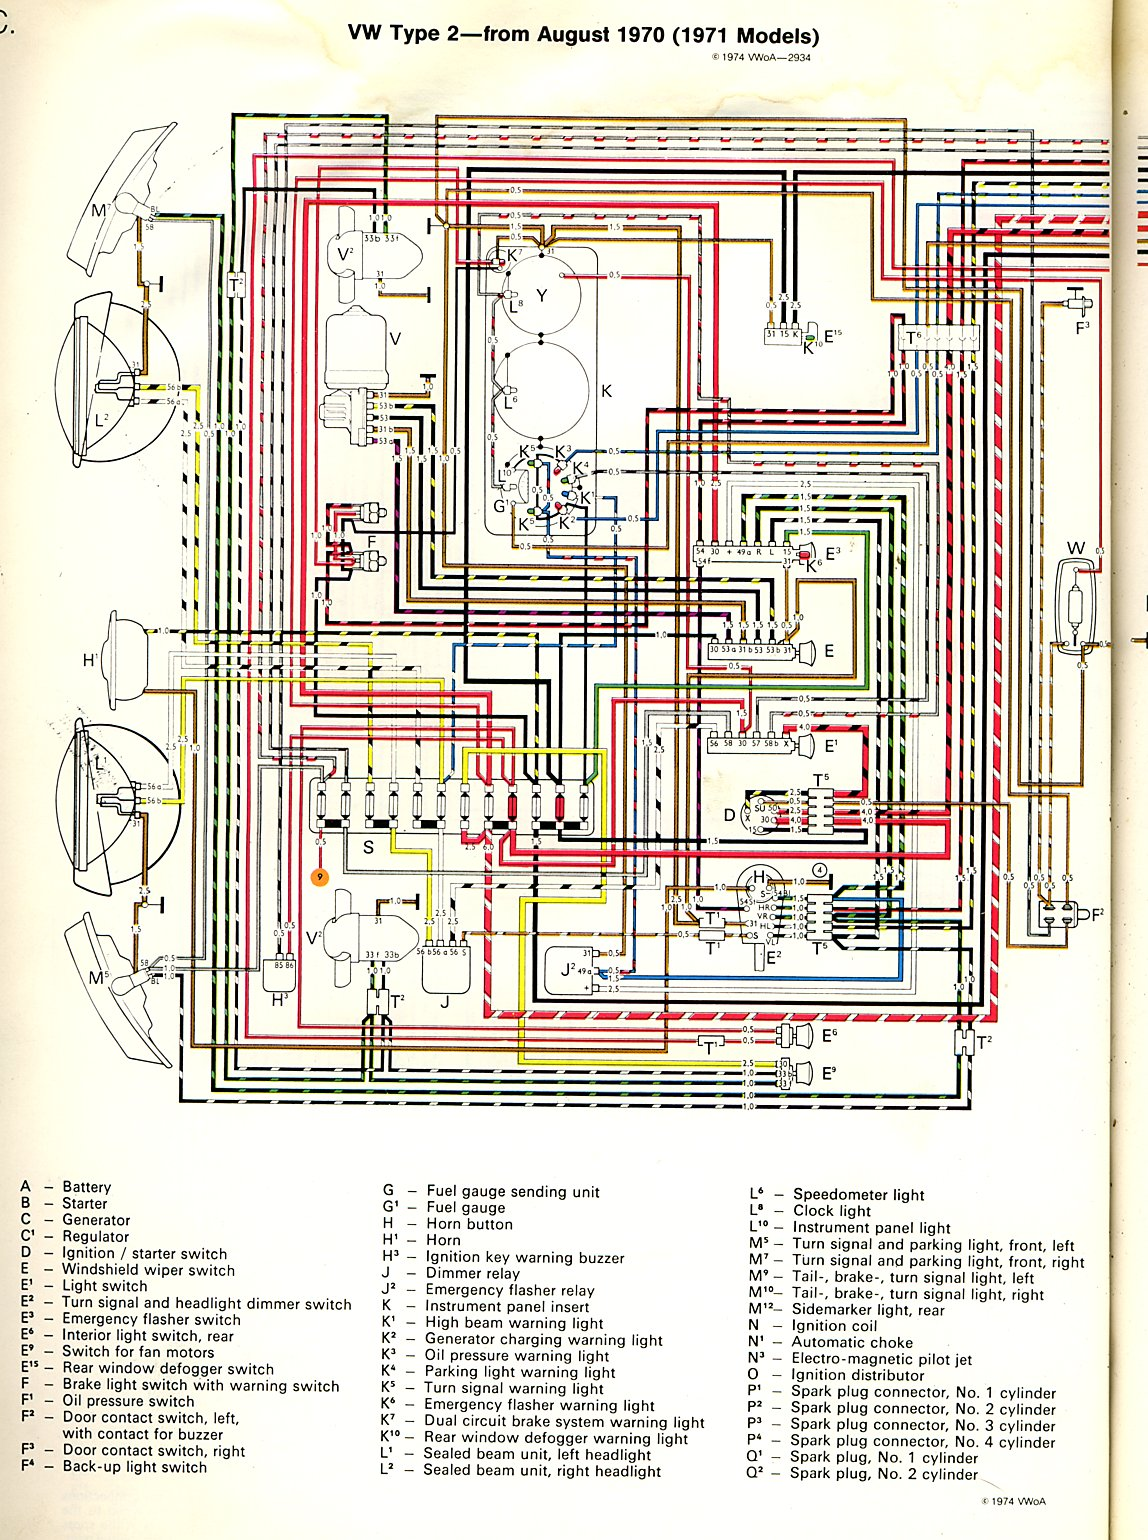 73 vw bus wiring diagrams not lossing wiring diagram • thesamba com type 2 wiring diagrams rh thesamba com 1968 vw bus wiring diagram 77 vw